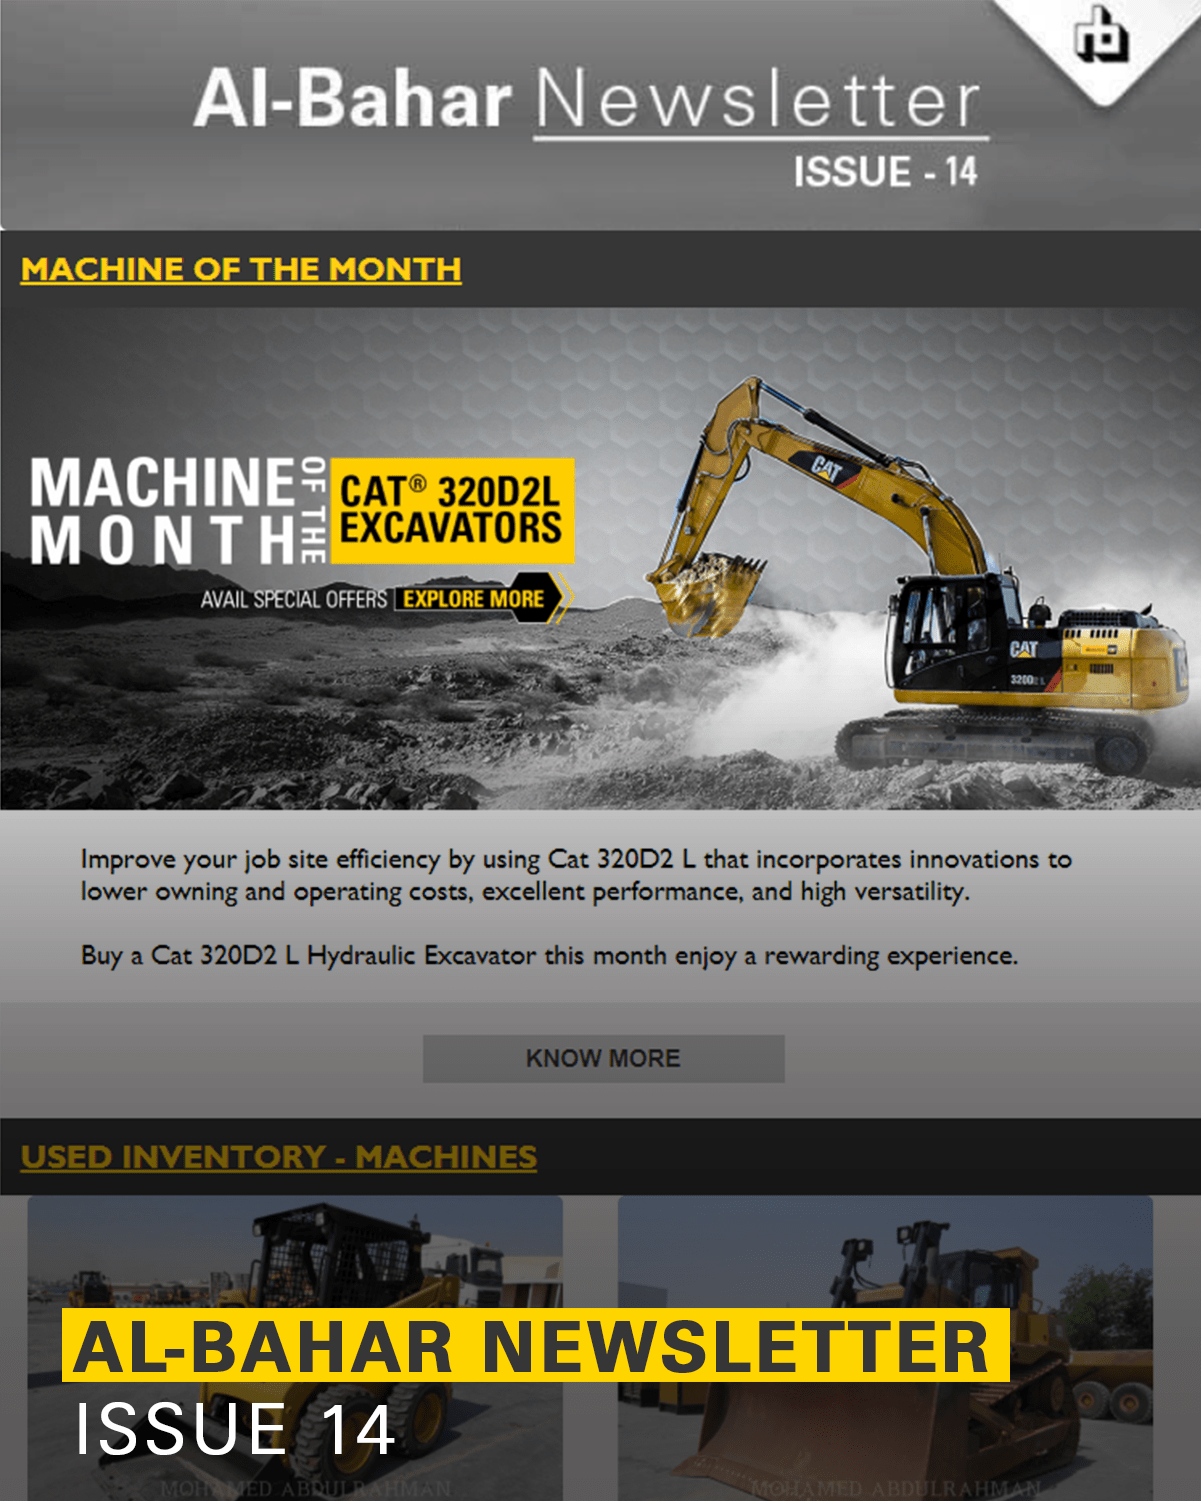 al-bahar-2018-newsletter-issue-14